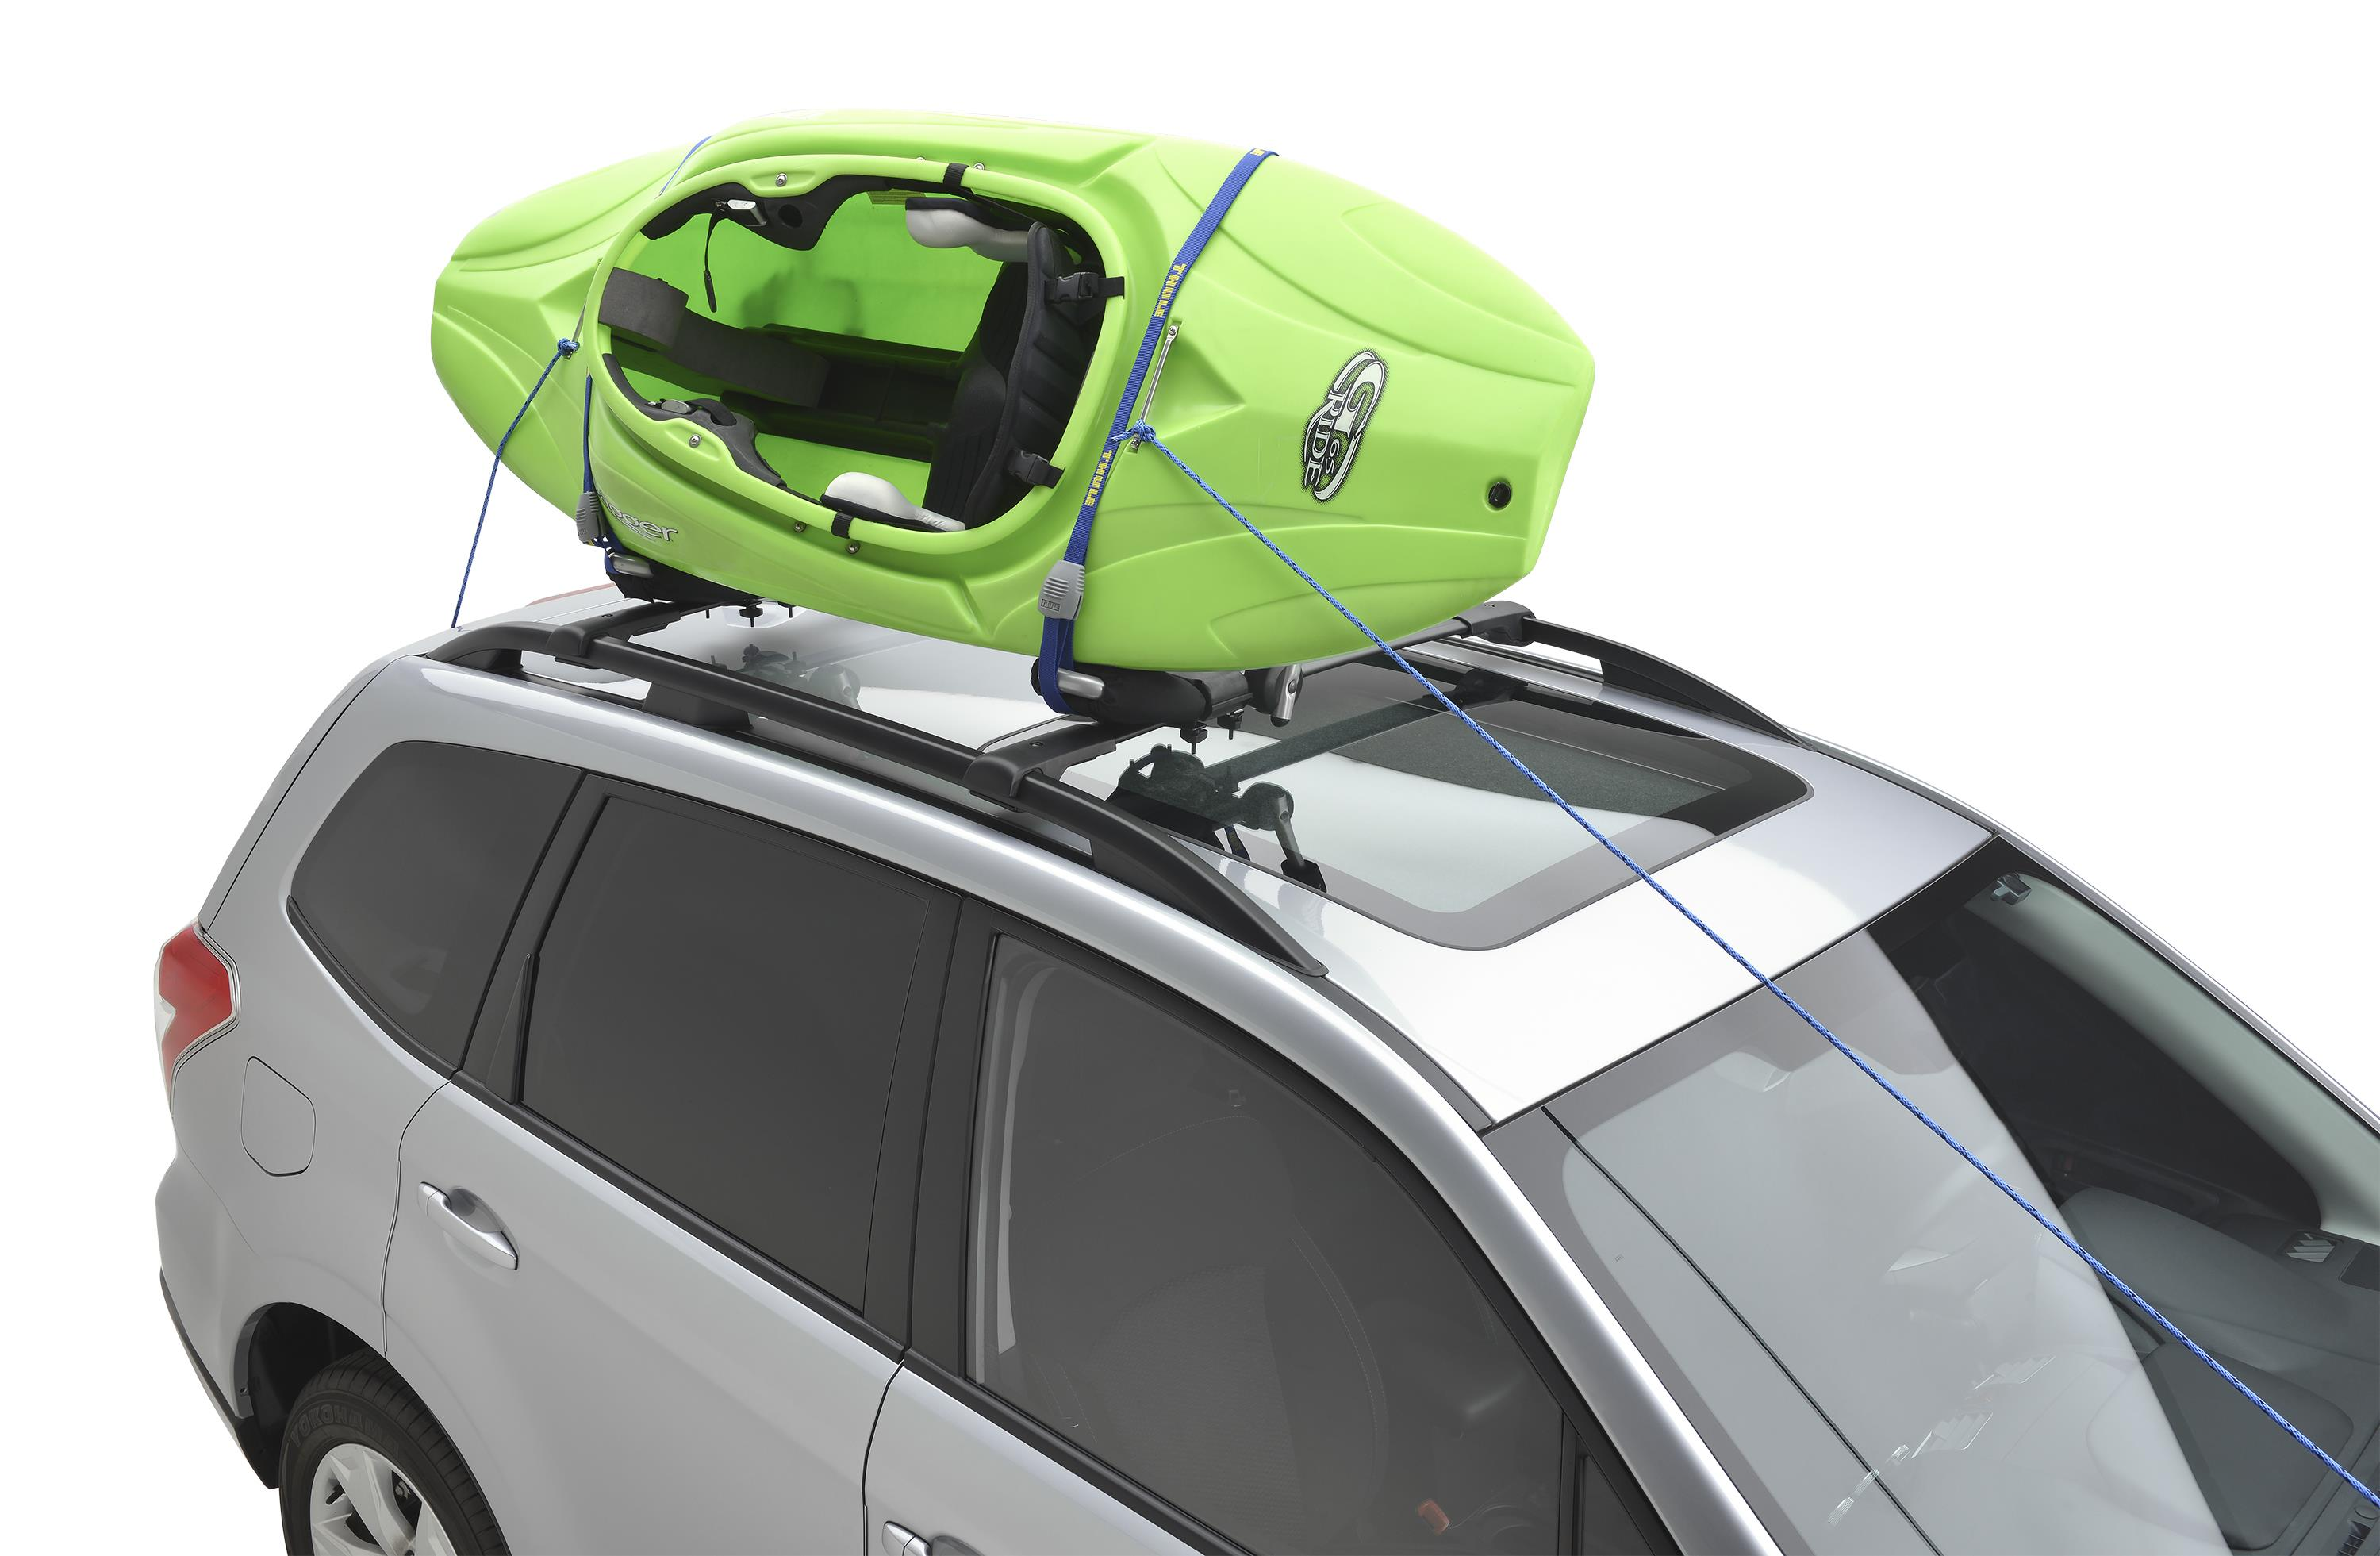 2017 Subaru Outback Kayak Carrier Thule Wide